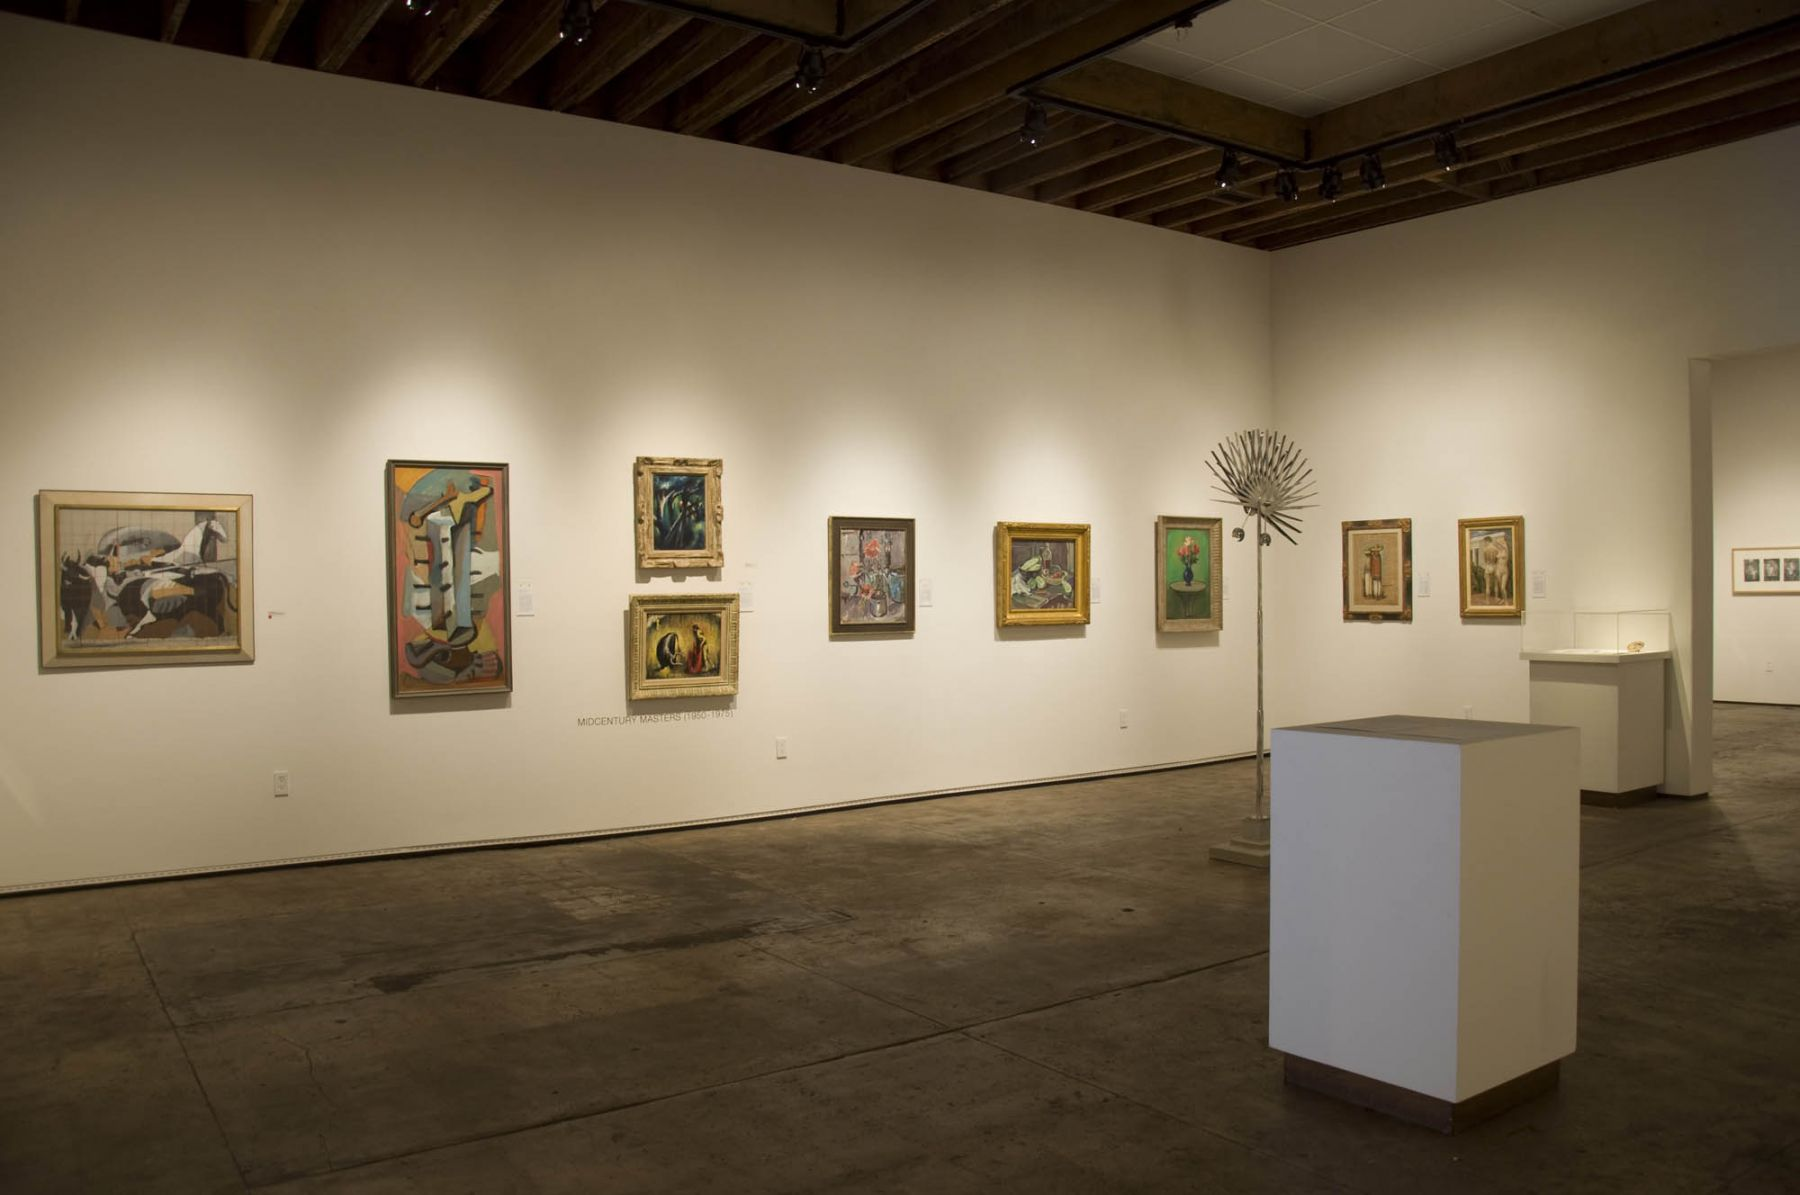 The Art of Santa Barbara, Channing Peake, Dan Lutz, Ken Bortolazzo, Gracy Libby Vollmer, Clarence Hinkle, Lyla Harcoff, Alfred Ramos Martinez, Douglas Parshall